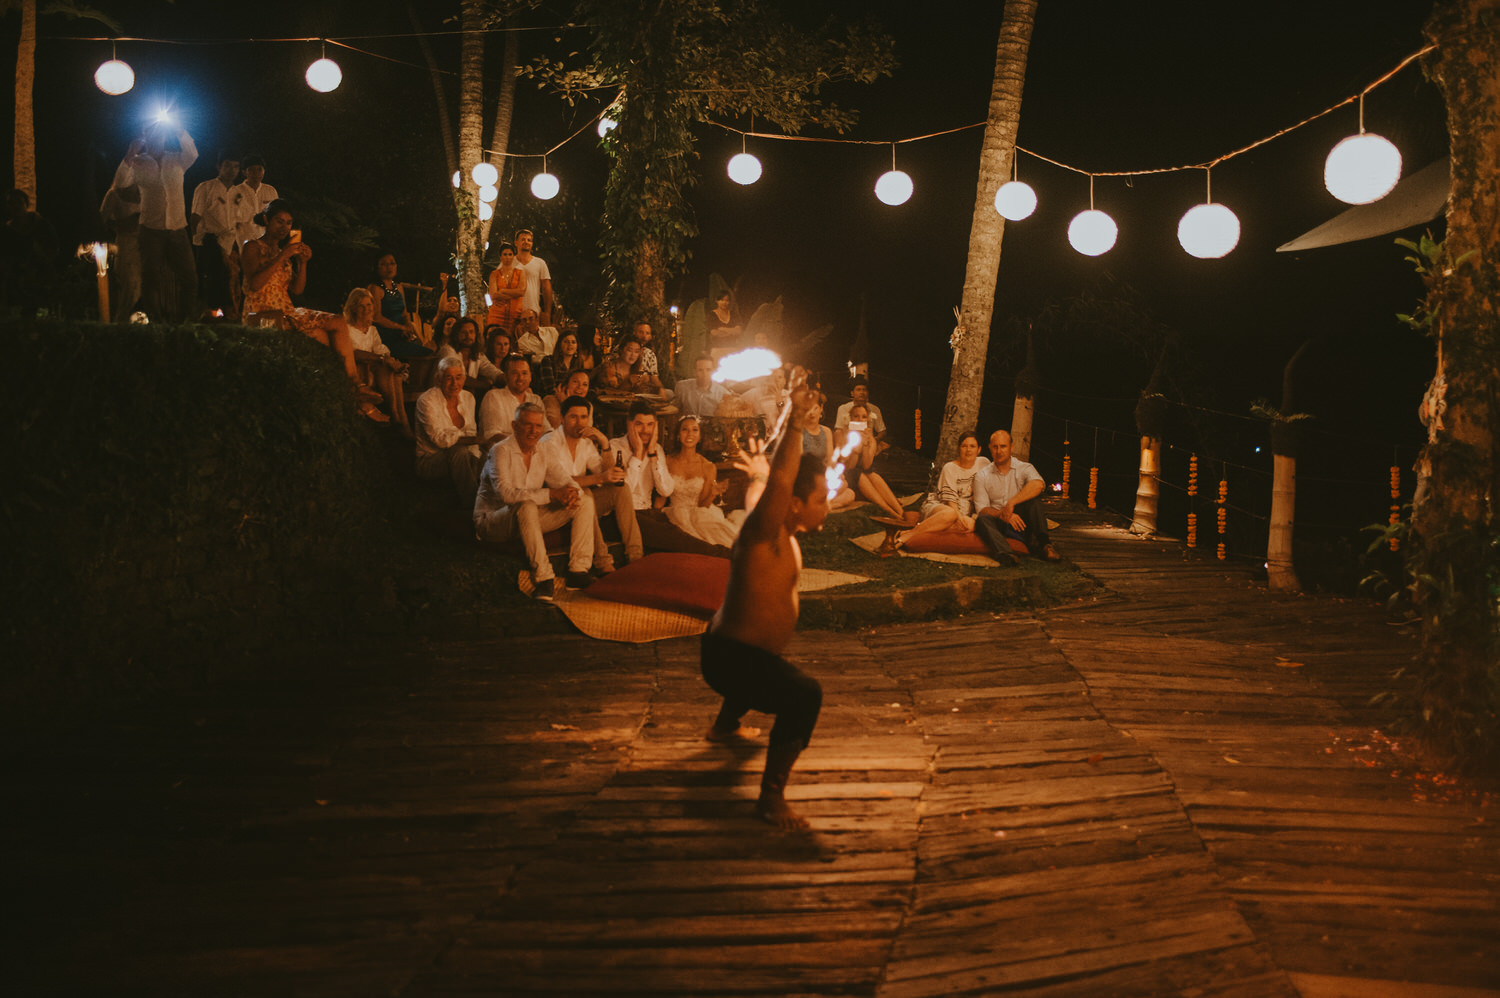 bali-wedding-ubud-wedding-wedding-destination-diktatphotography-kadek-artayasa-elaine-and-glenn-170